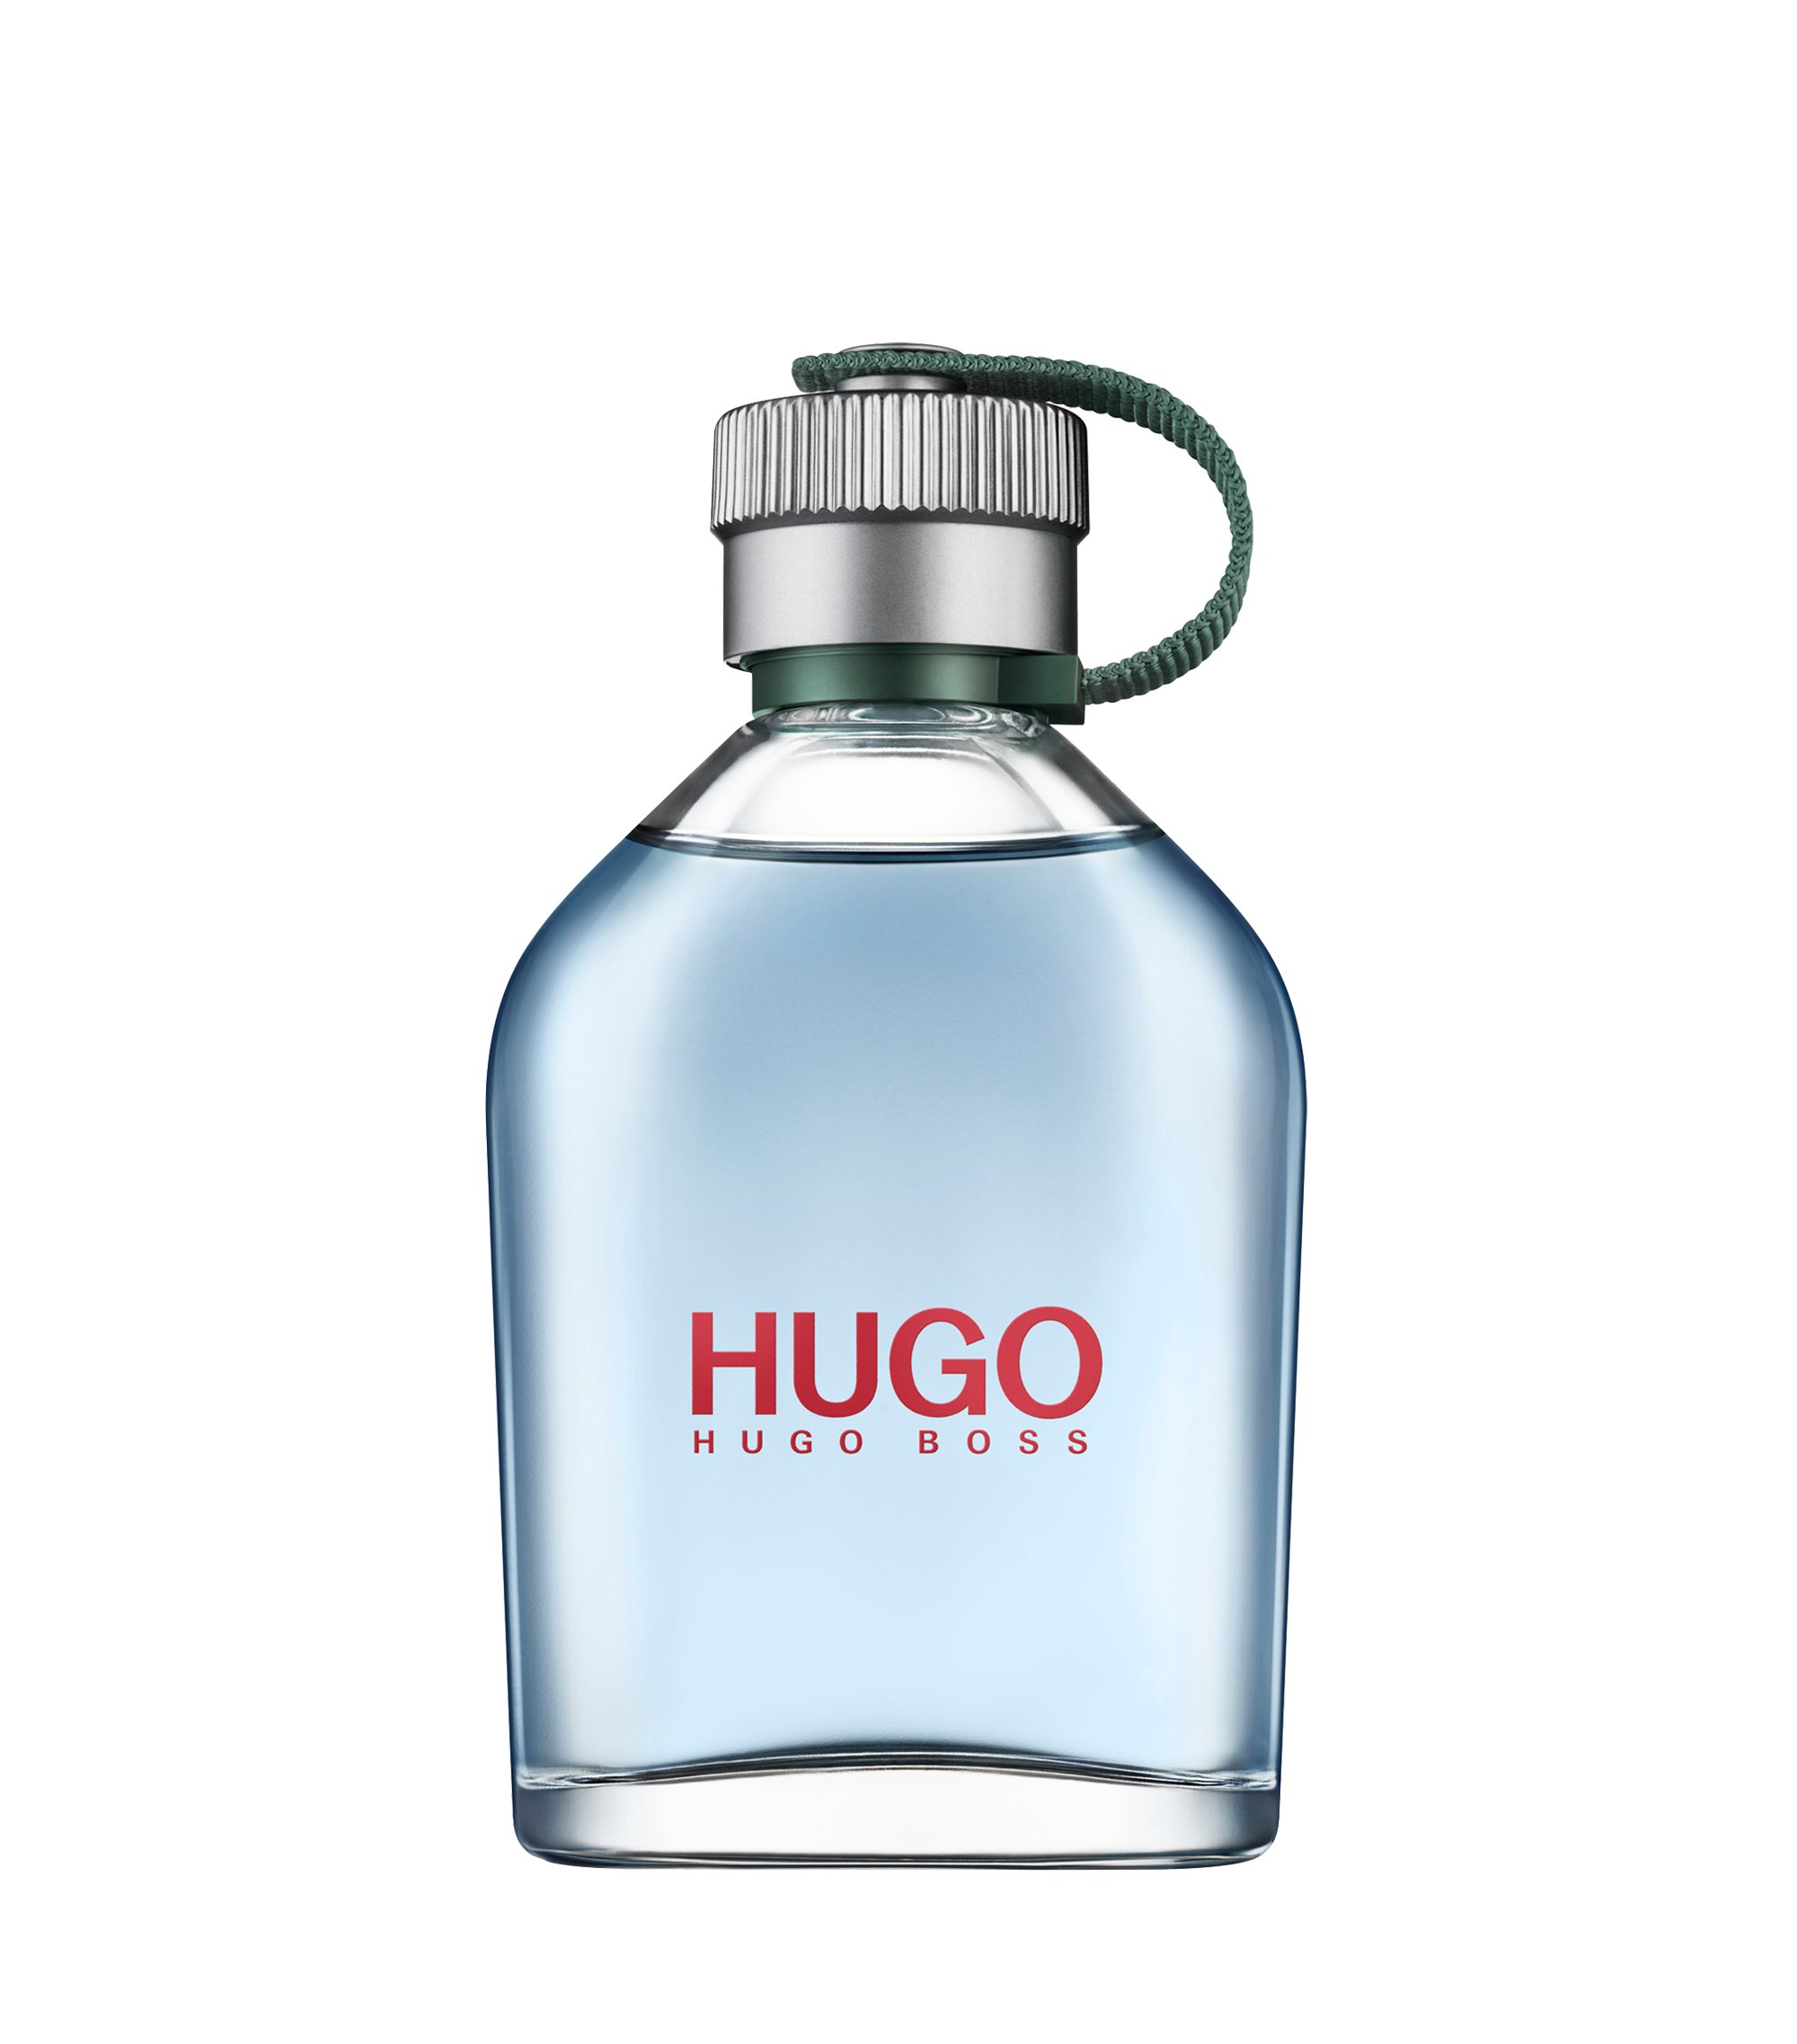 HUGO Man eau de toilette 125ml , Assorted-Pre-Pack